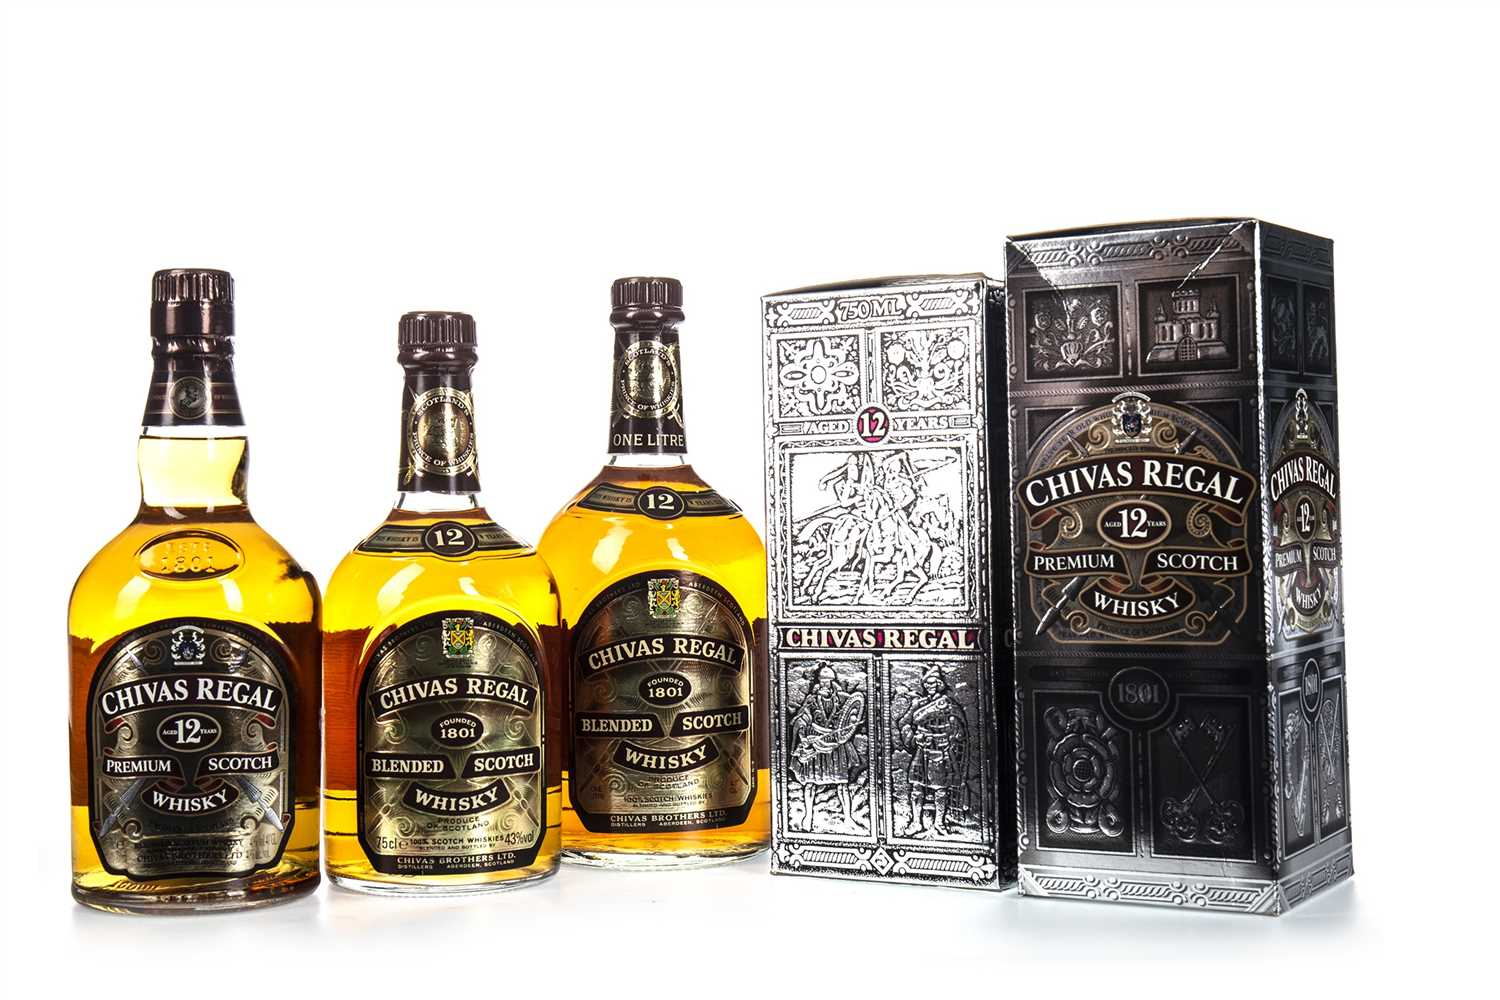 Lot 419 - TWO BOTTLES AND ONE LITRE OF CHIVAS REGAL 12 YEARS OLD